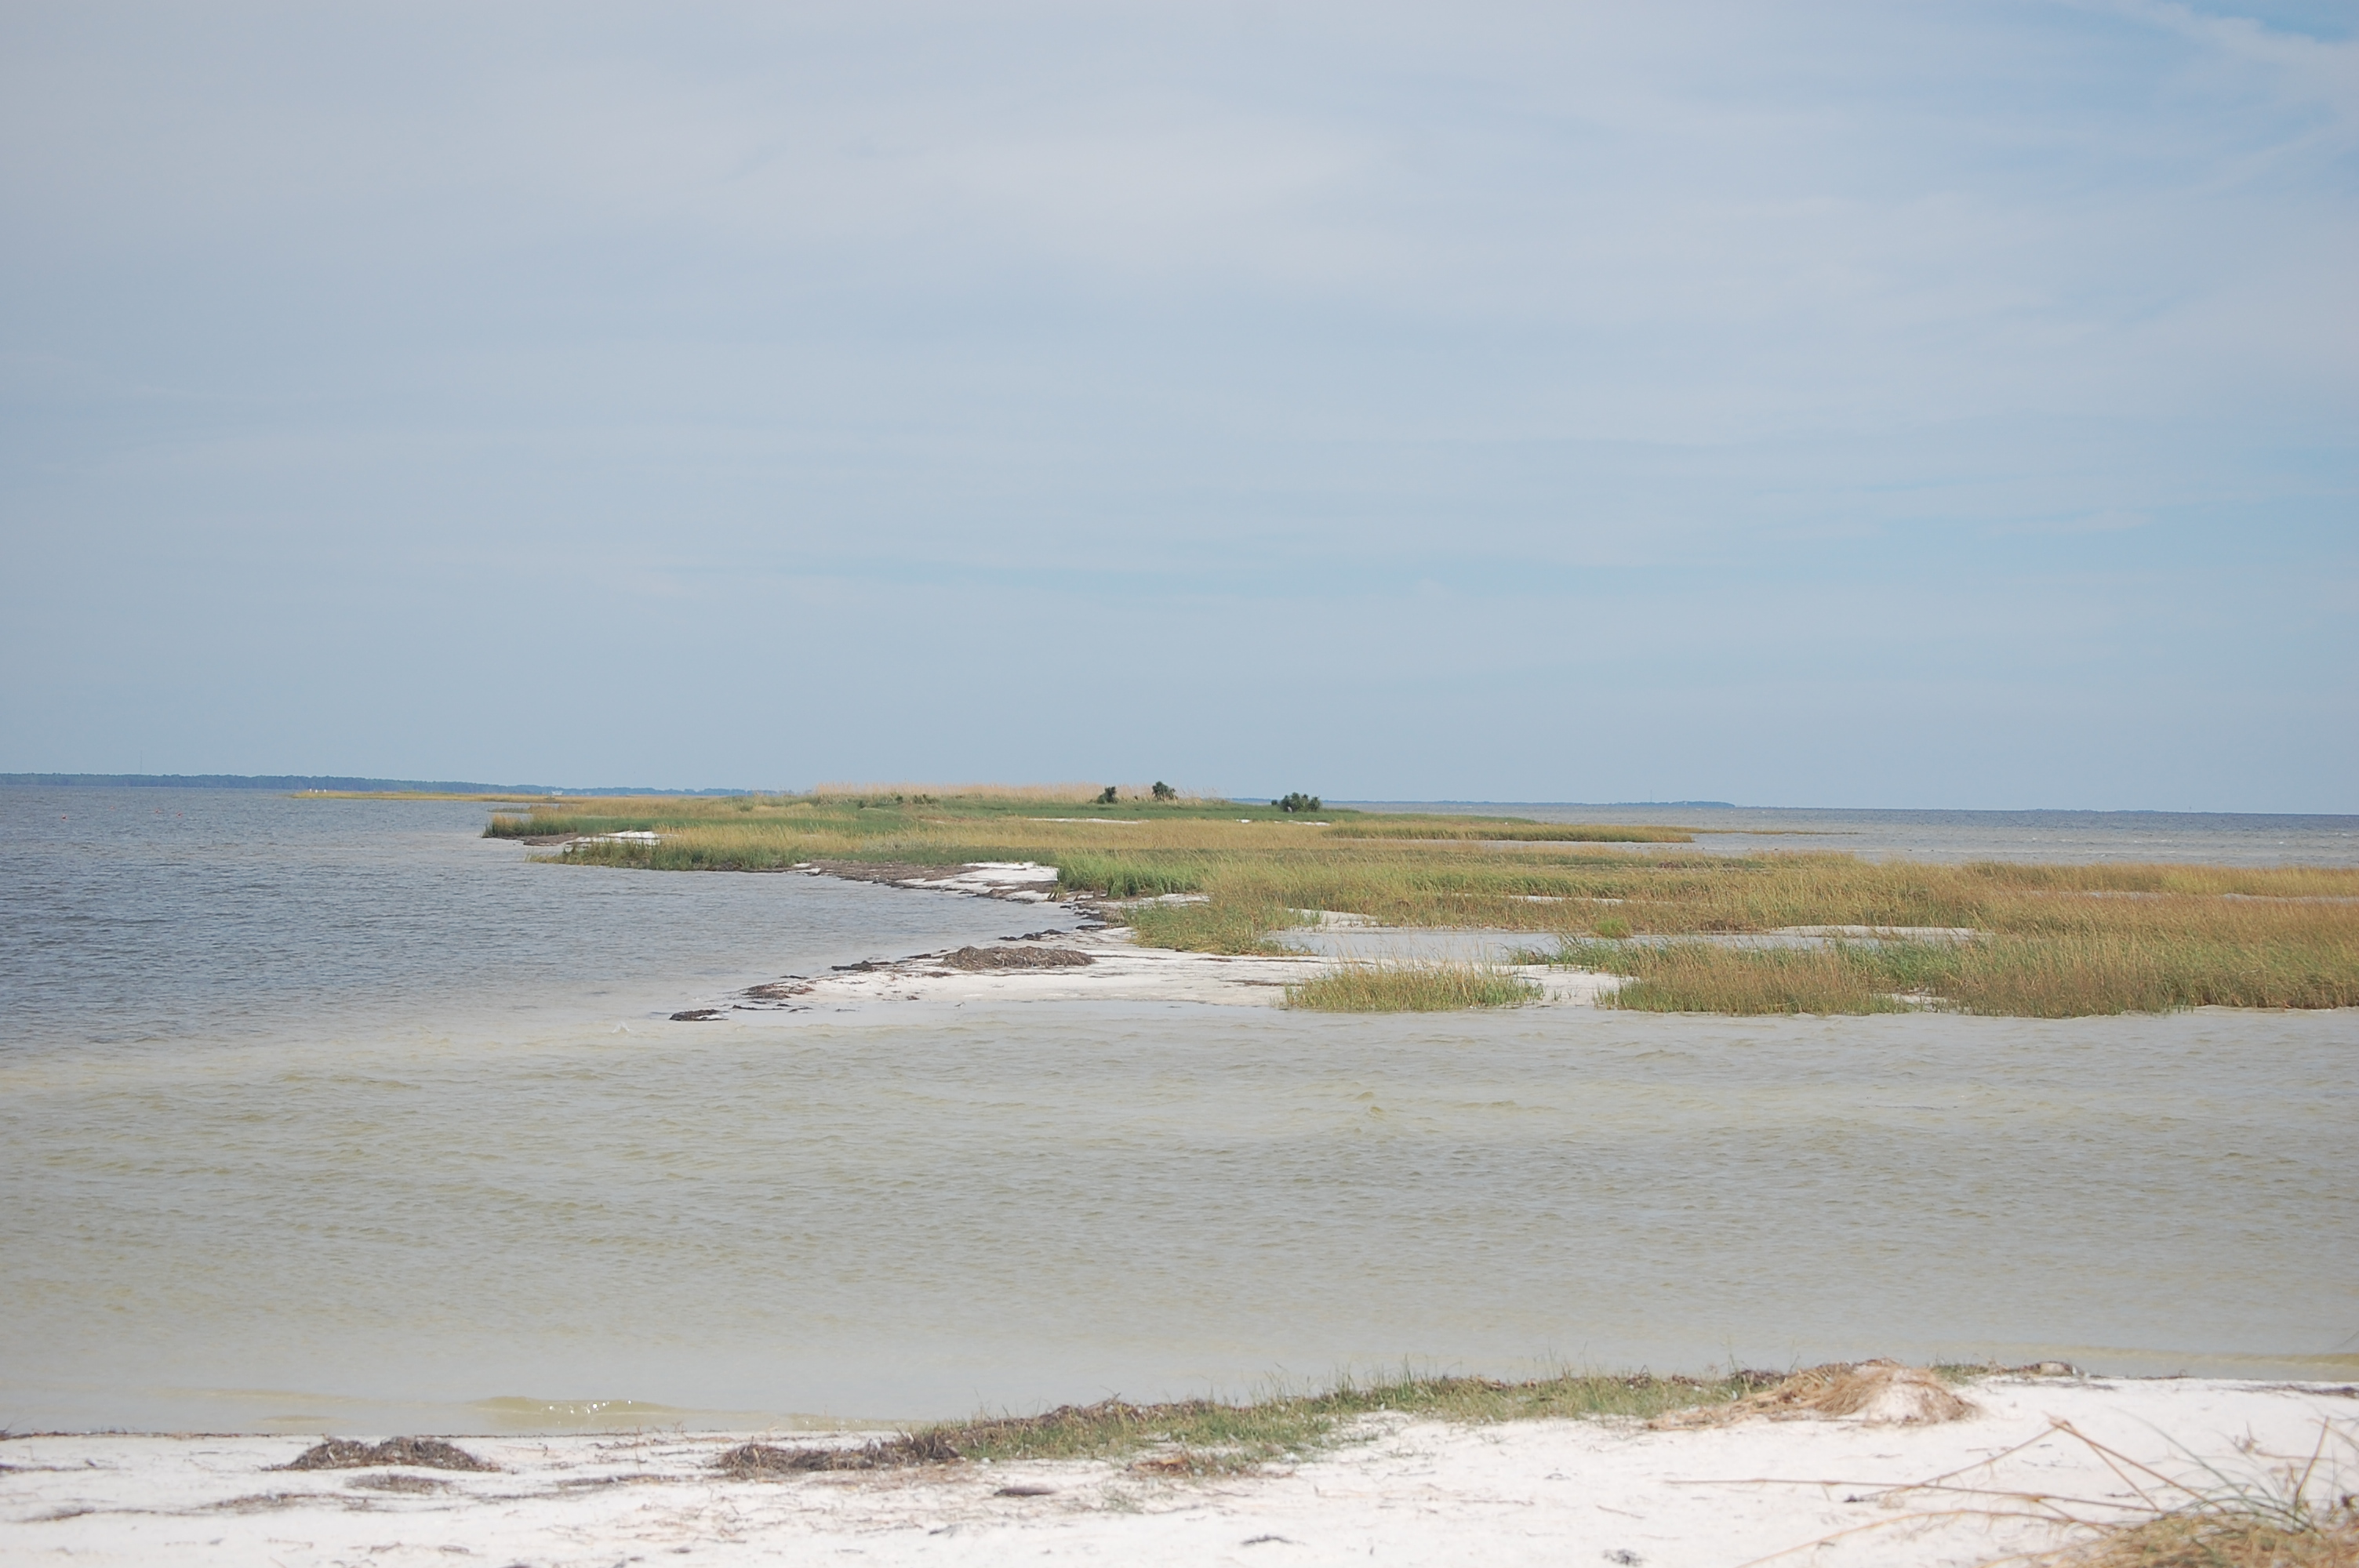 Lanark Reef 6-mile stretch of islands, seagrass and shallow sandbars in Florida's Gulf Coast. Credit: FWC